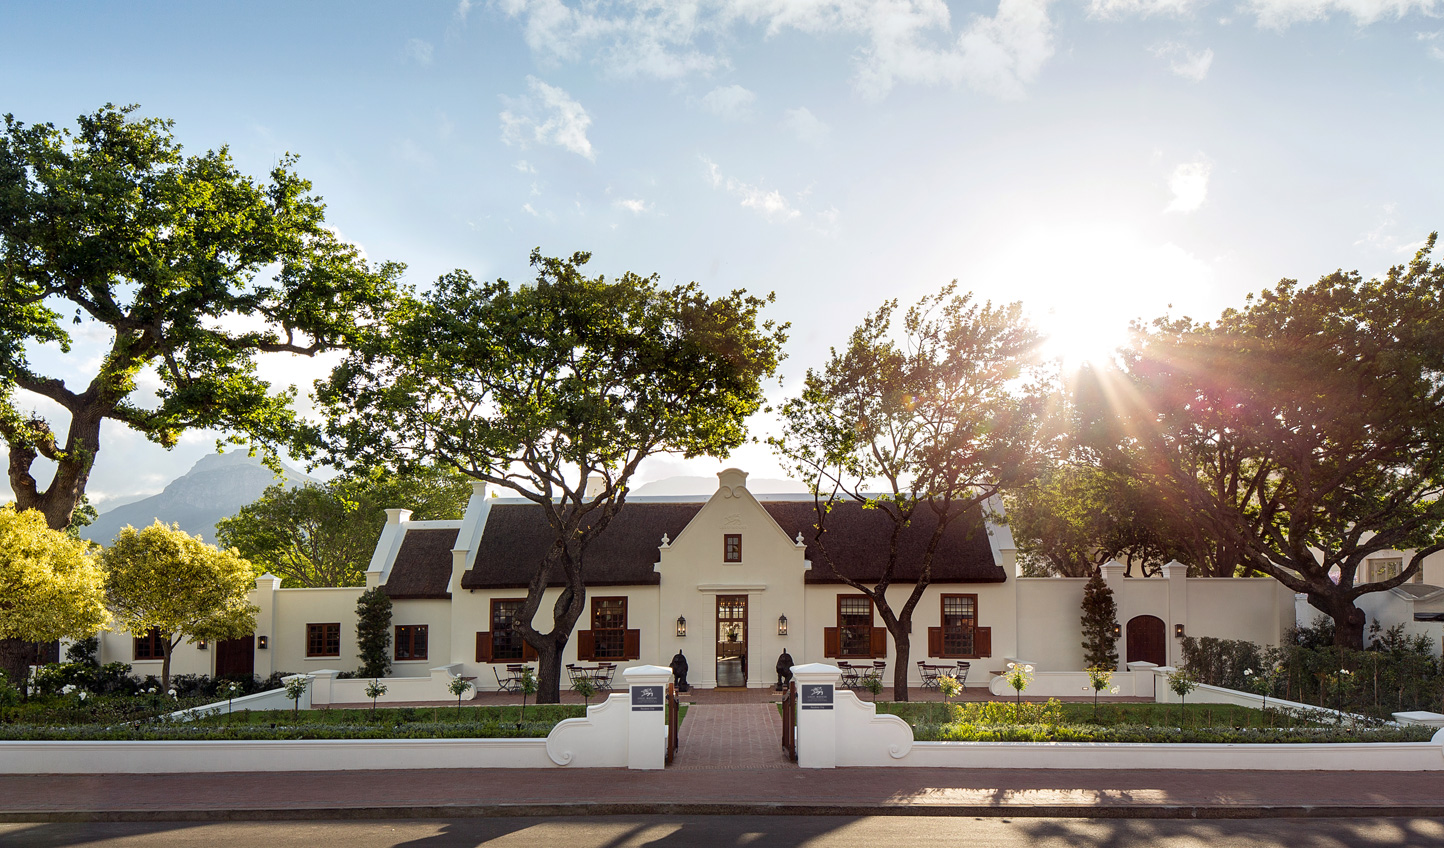 Leeu House in the heart of Franschhoek